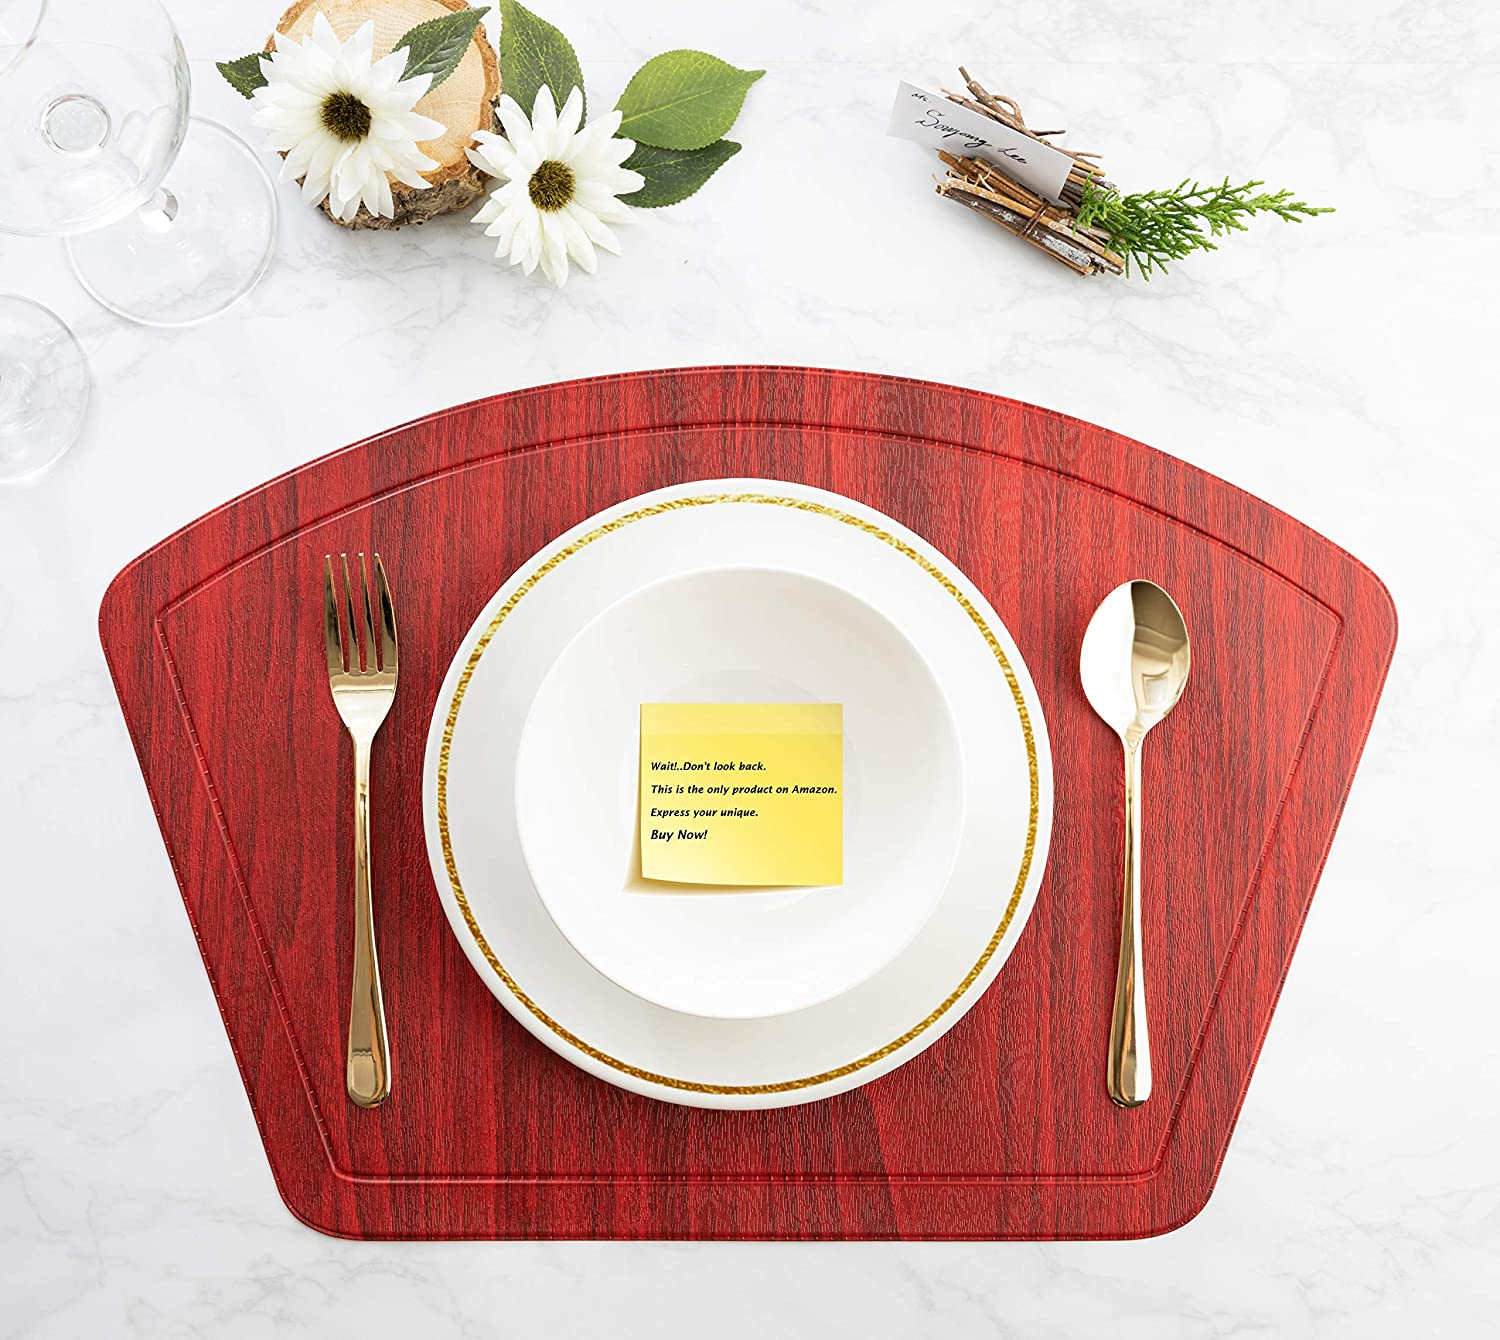 4, Pu/_Cherry Red IMMOKAZ Round Placemat for Dining Heat Insulation Stain Resistant Non-Slip Waterproof Washable Wipe Clean PU Fan Shape Wedge Kitchen Table Mat Set